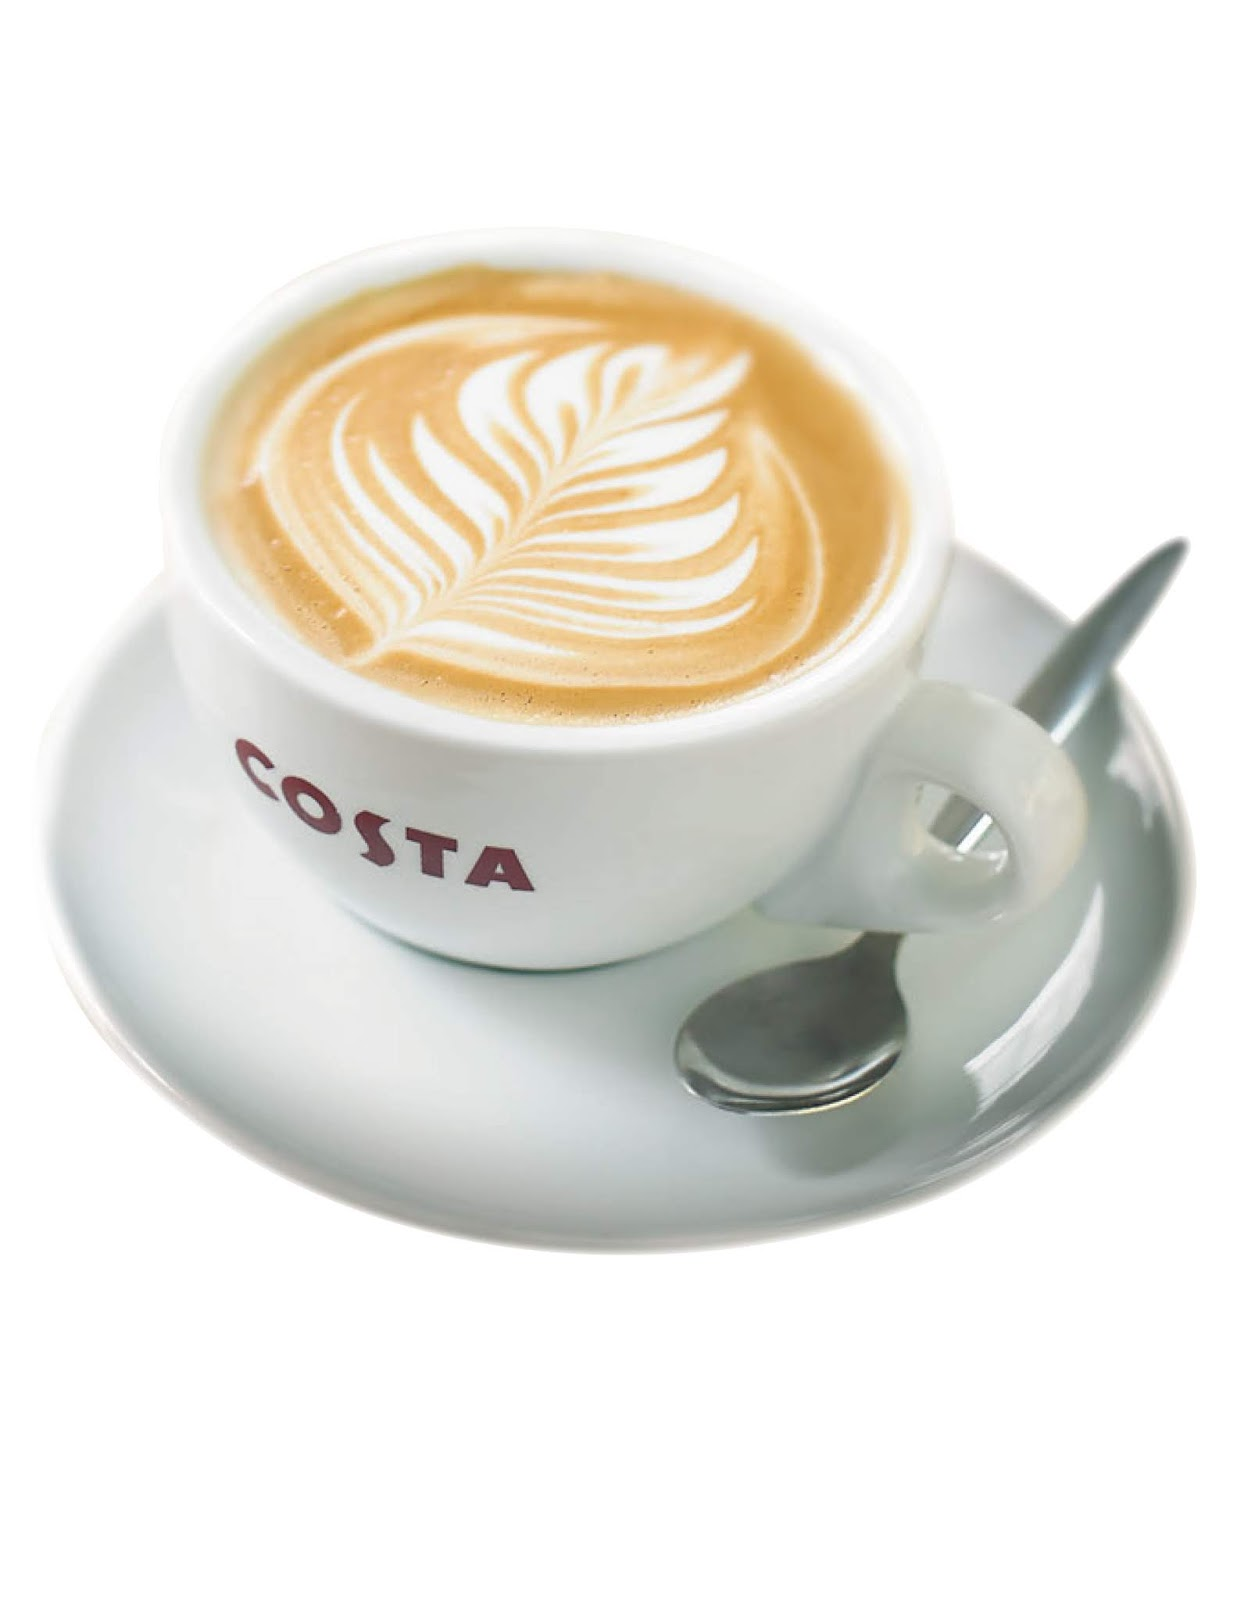 costa coffee launches londonstyle wednesdays with its. Black Bedroom Furniture Sets. Home Design Ideas